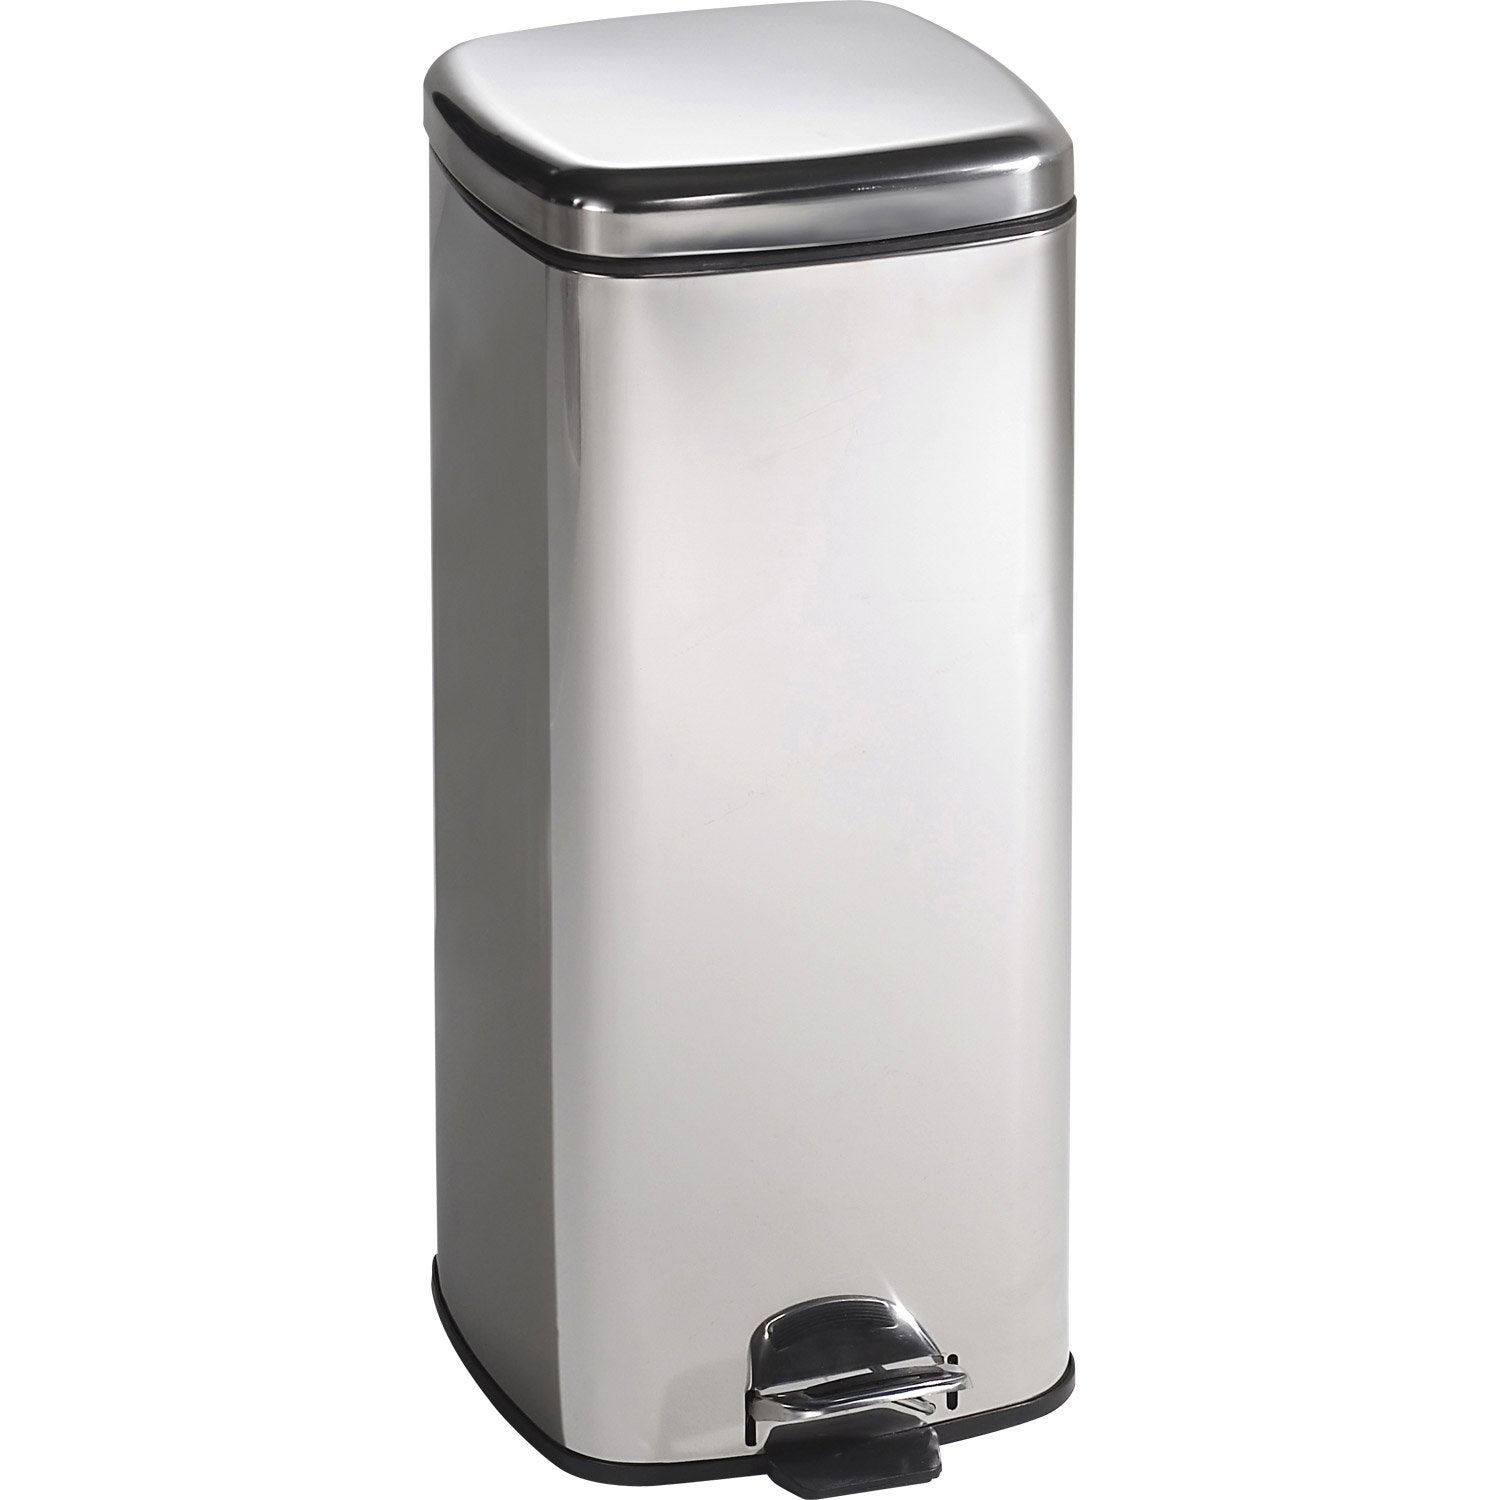 Poubelle de cuisine 50 l inox pictures to pin on pinterest - Poubelle cuisine rectangulaire ...